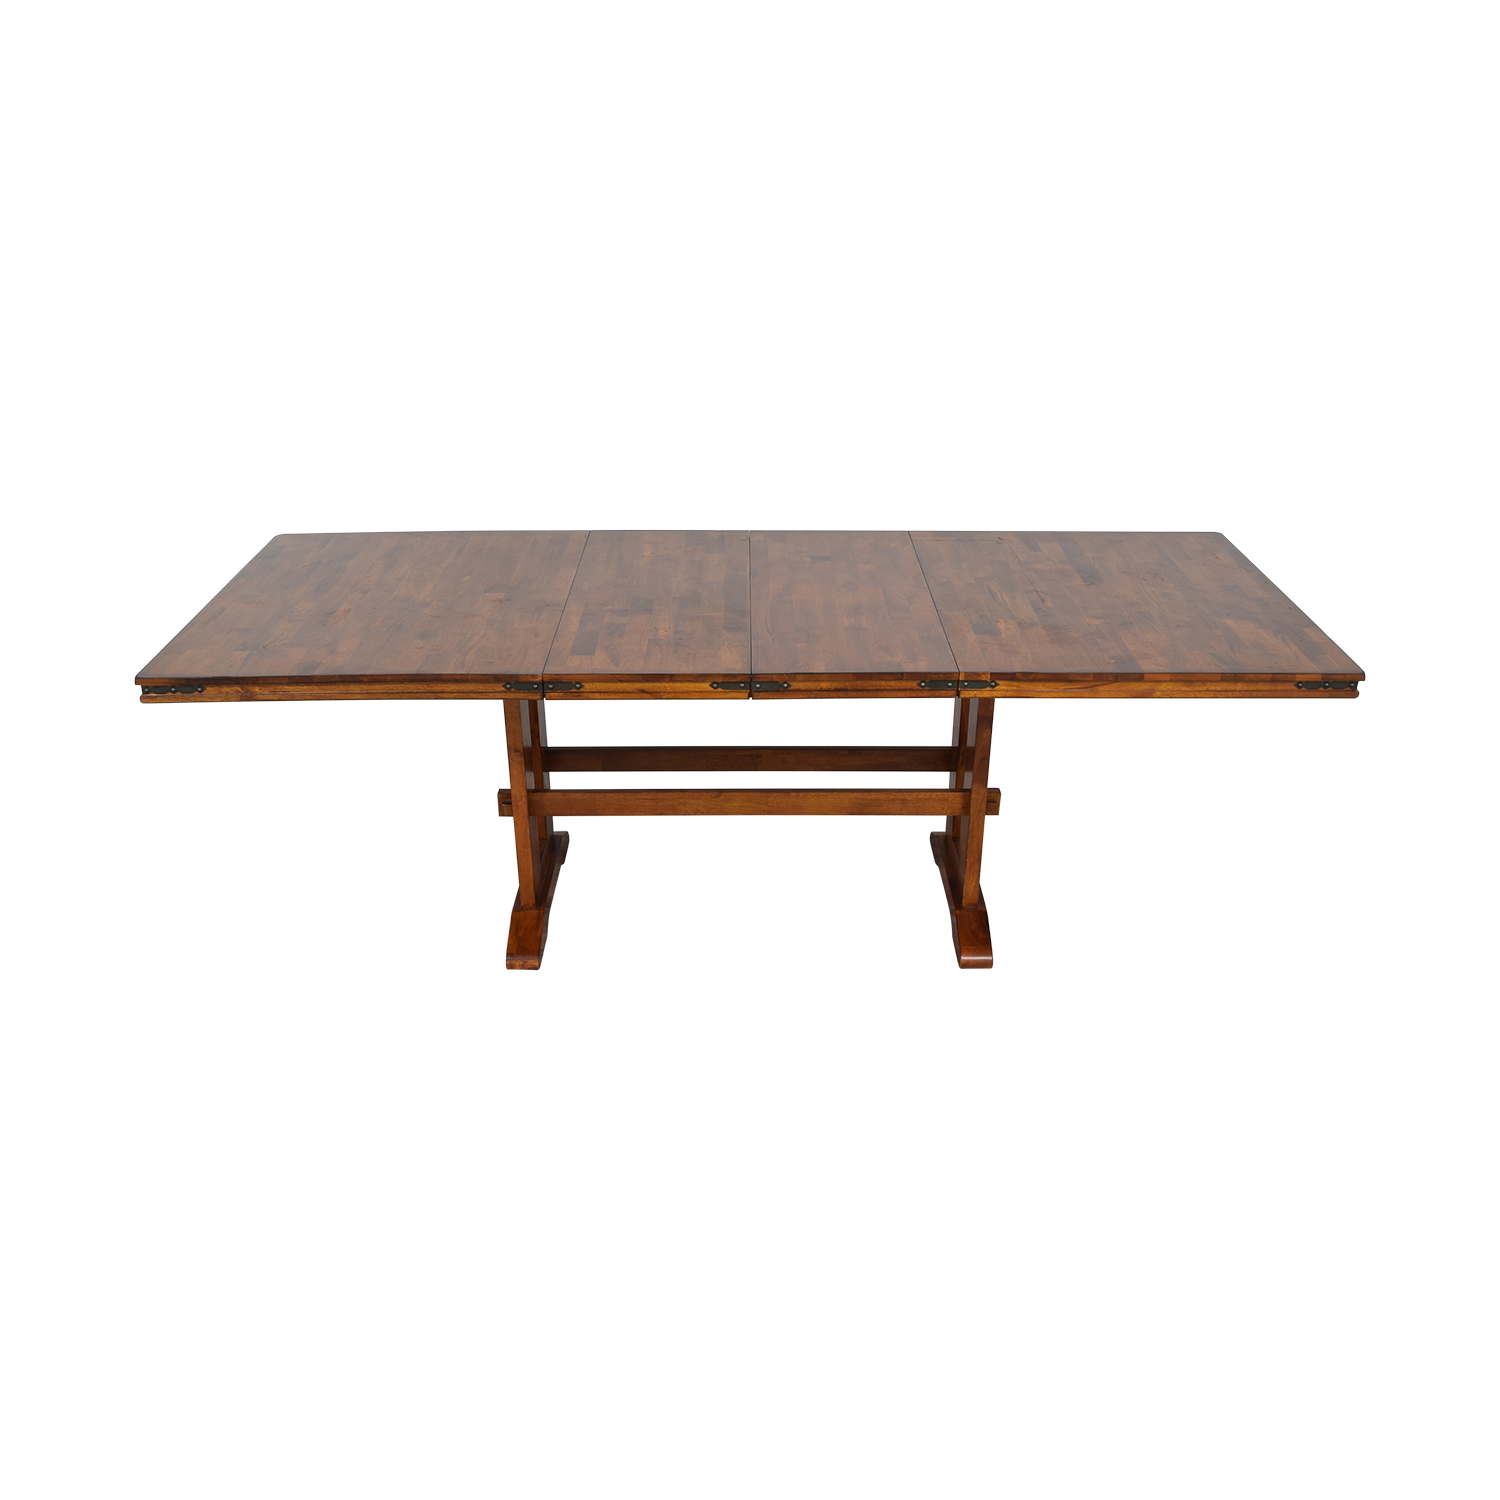 Lenox Lenox Extendable Dining Table for sale